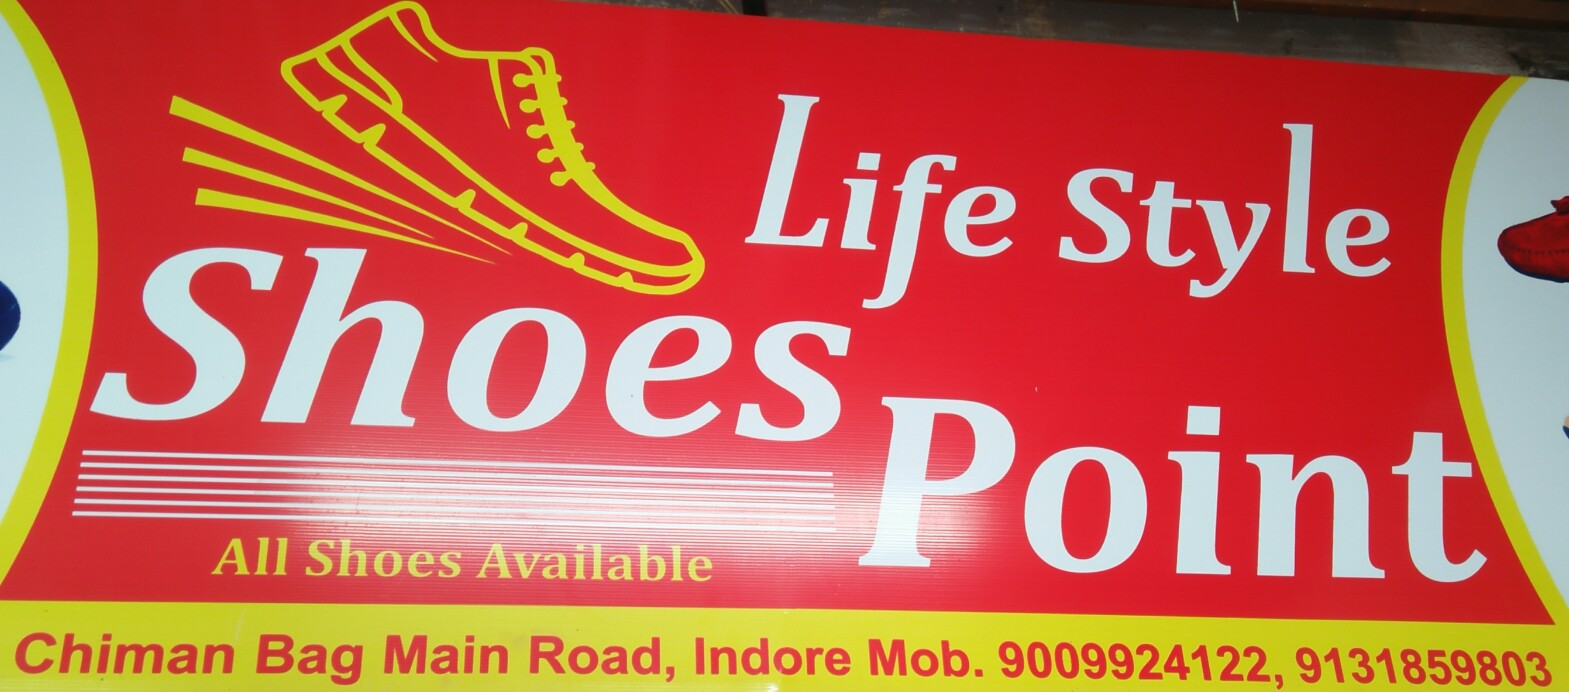 Life style shoes point